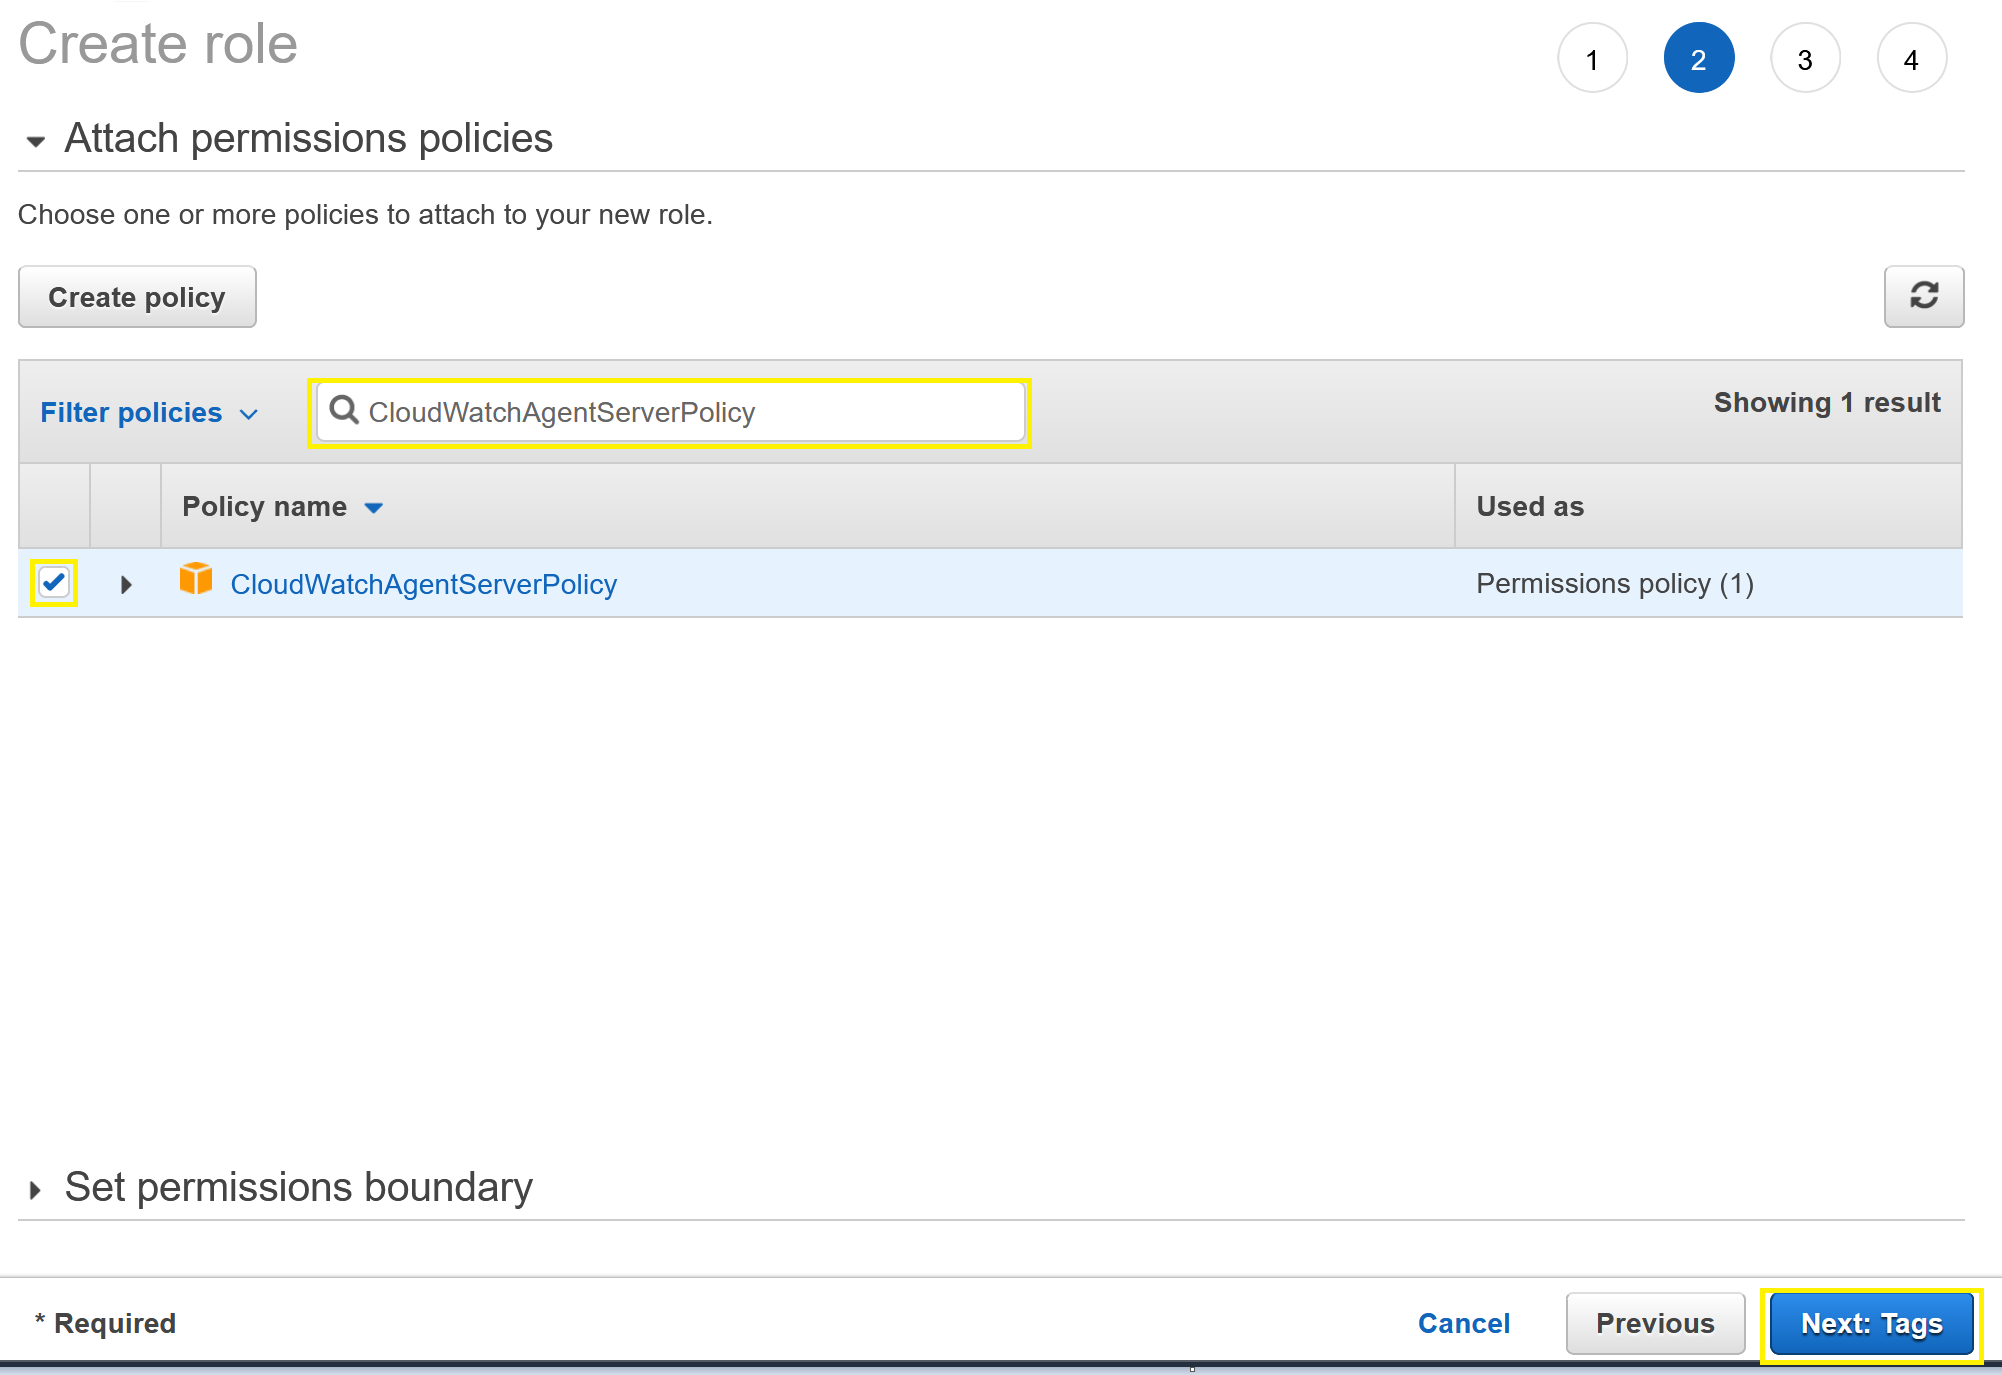 Attach permissions and policy menu showing CloudWatchAgentServerPolicy and Next: Tags selections.